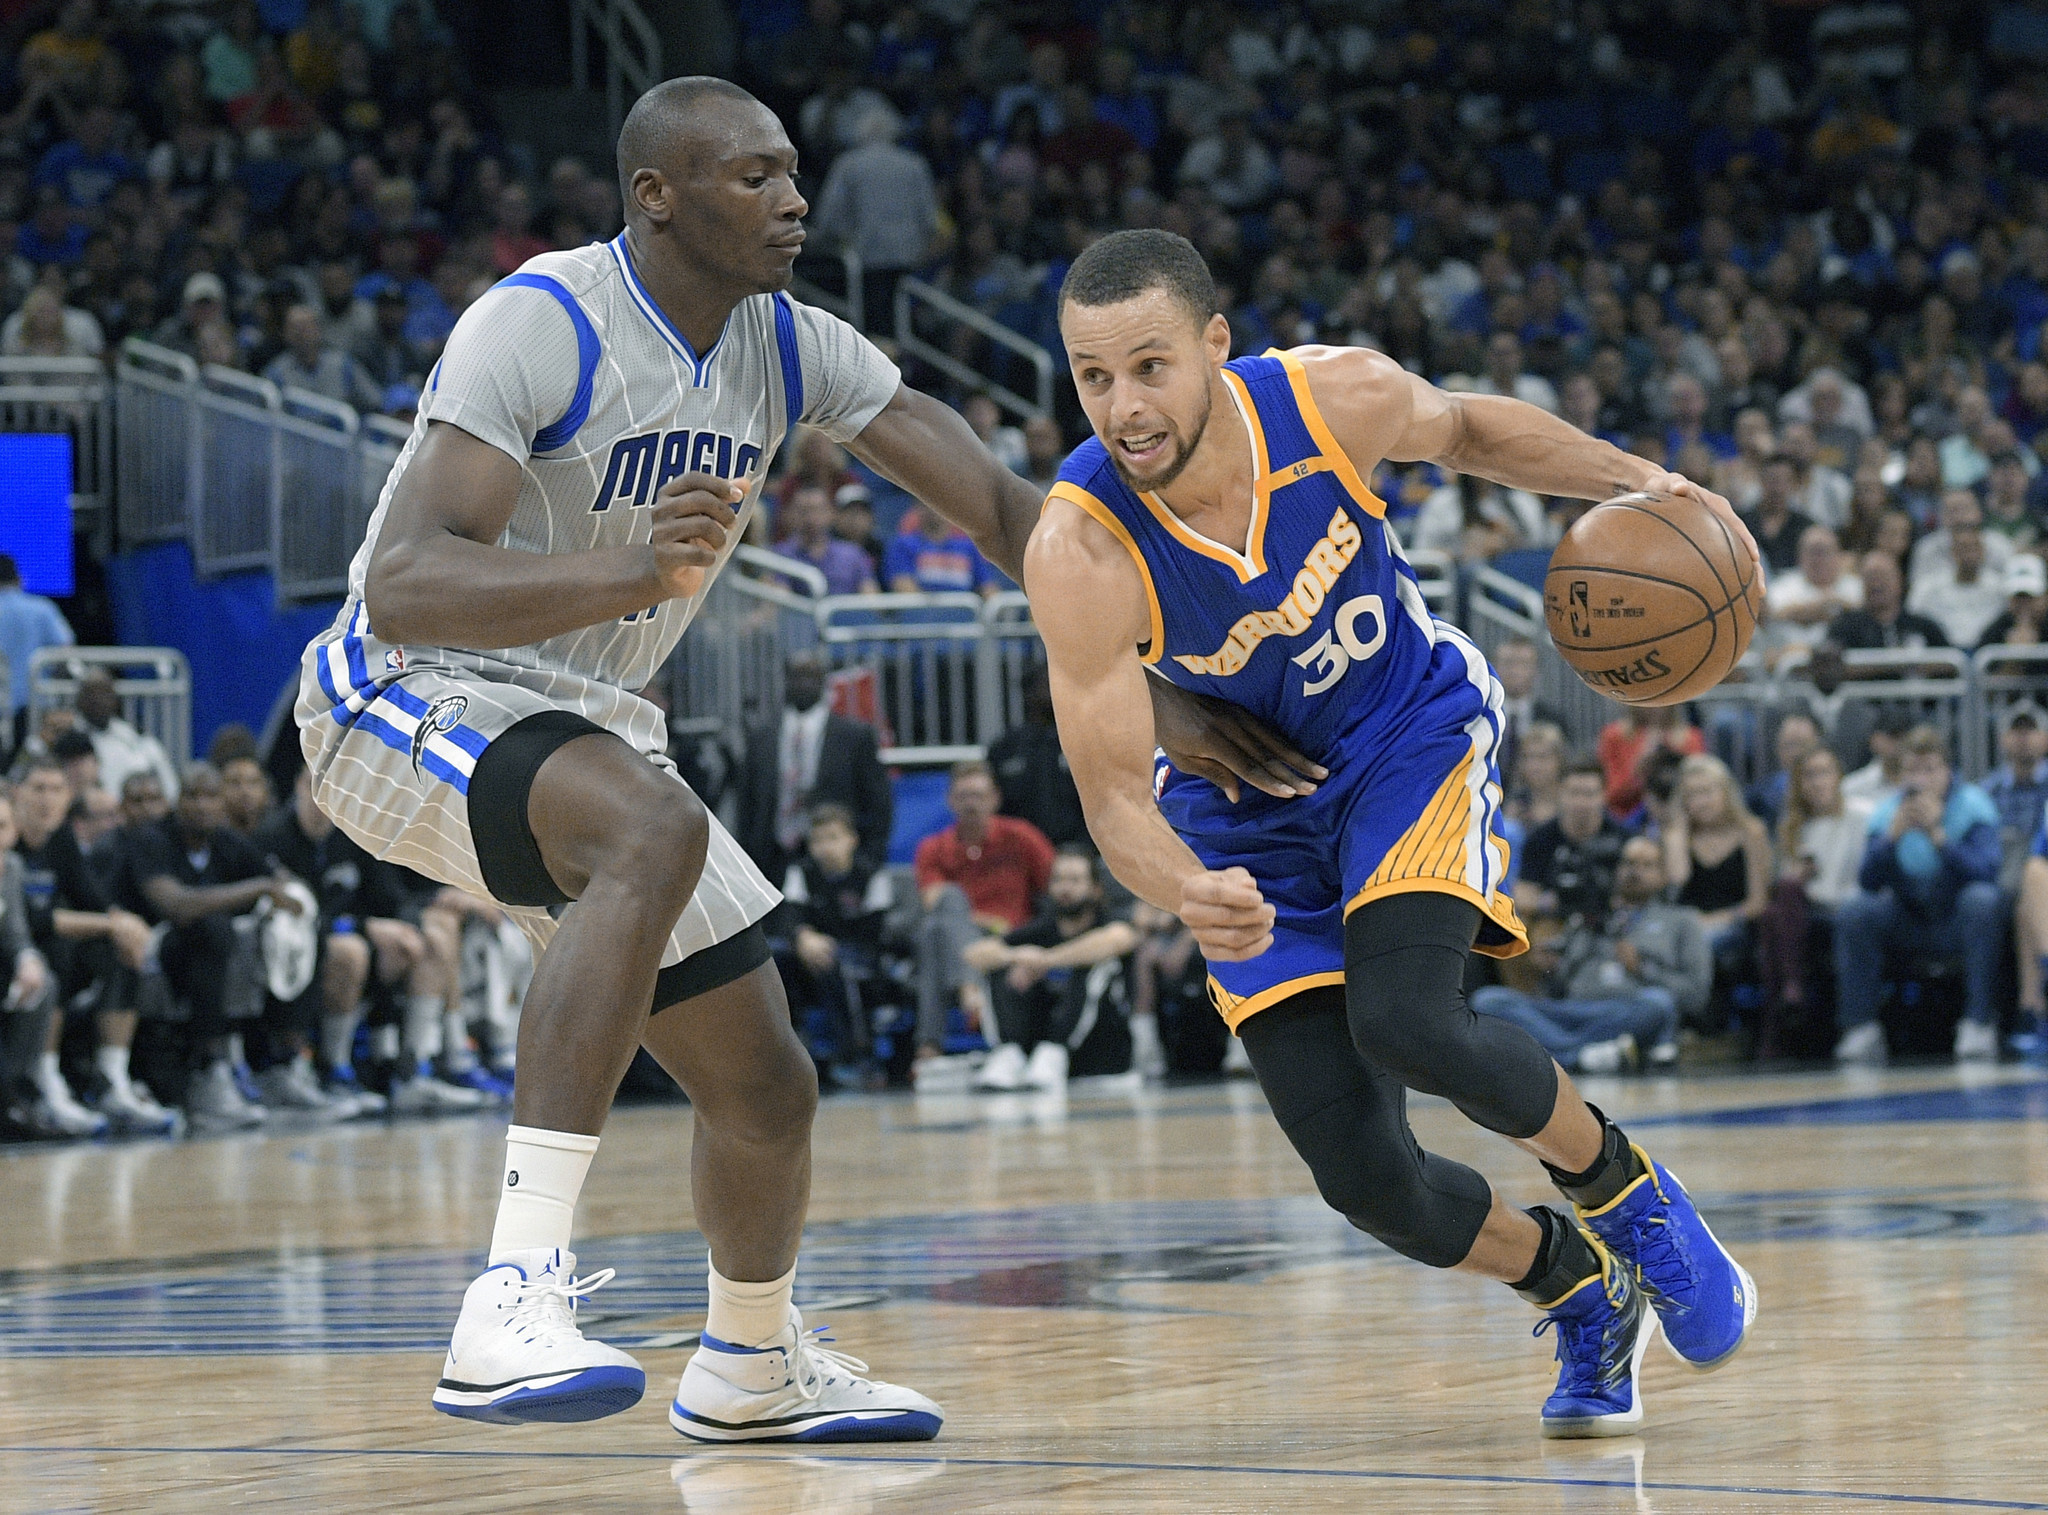 Stephen Curry scores 27 points as Warriors beat Magic 118-98